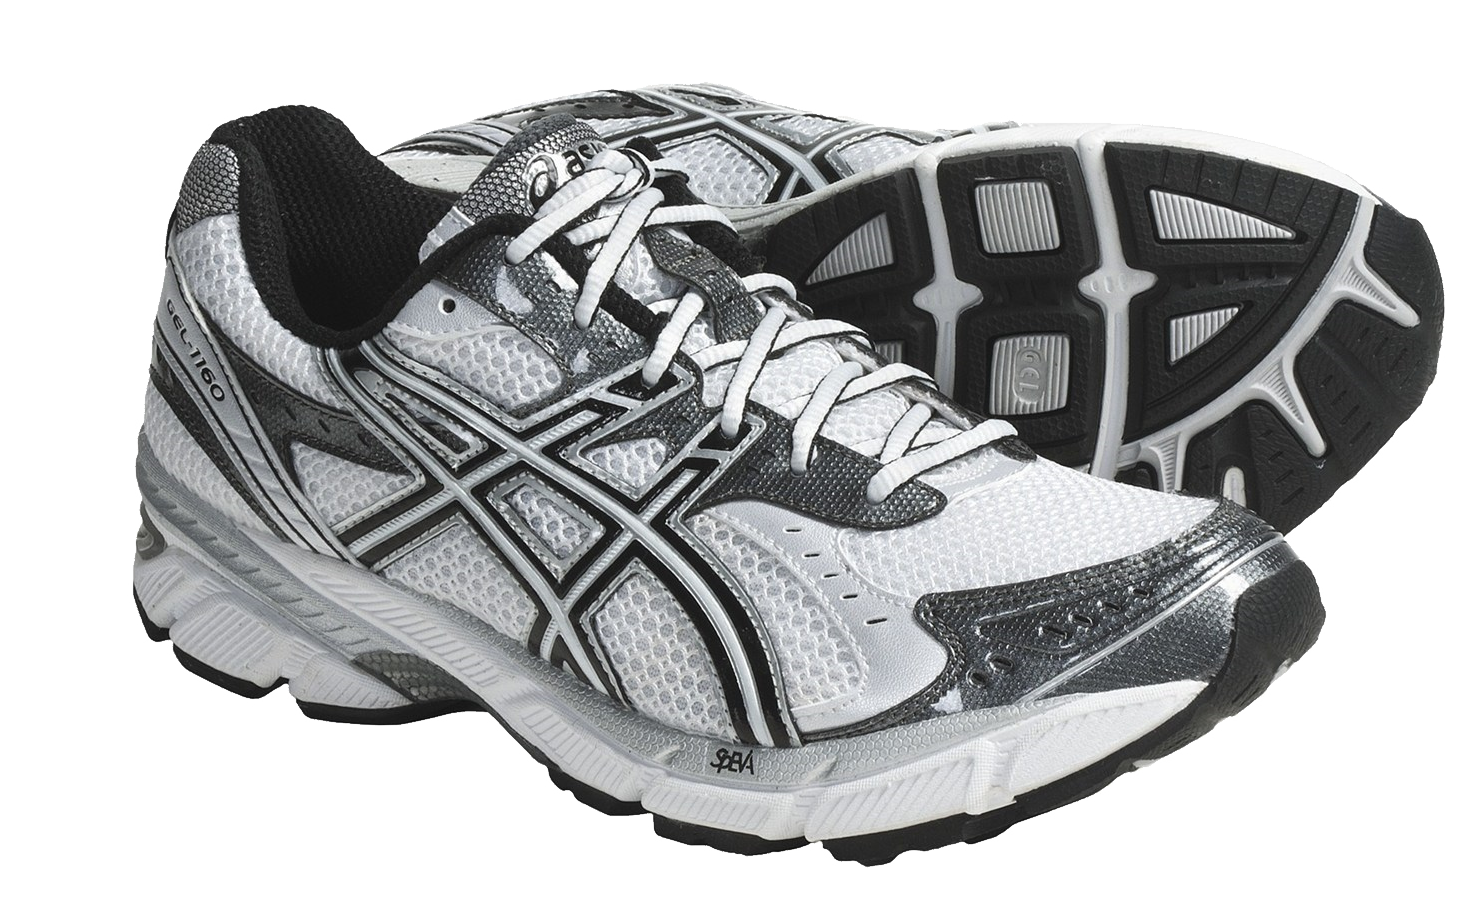 Clipart running shoe png. Shoes free images download